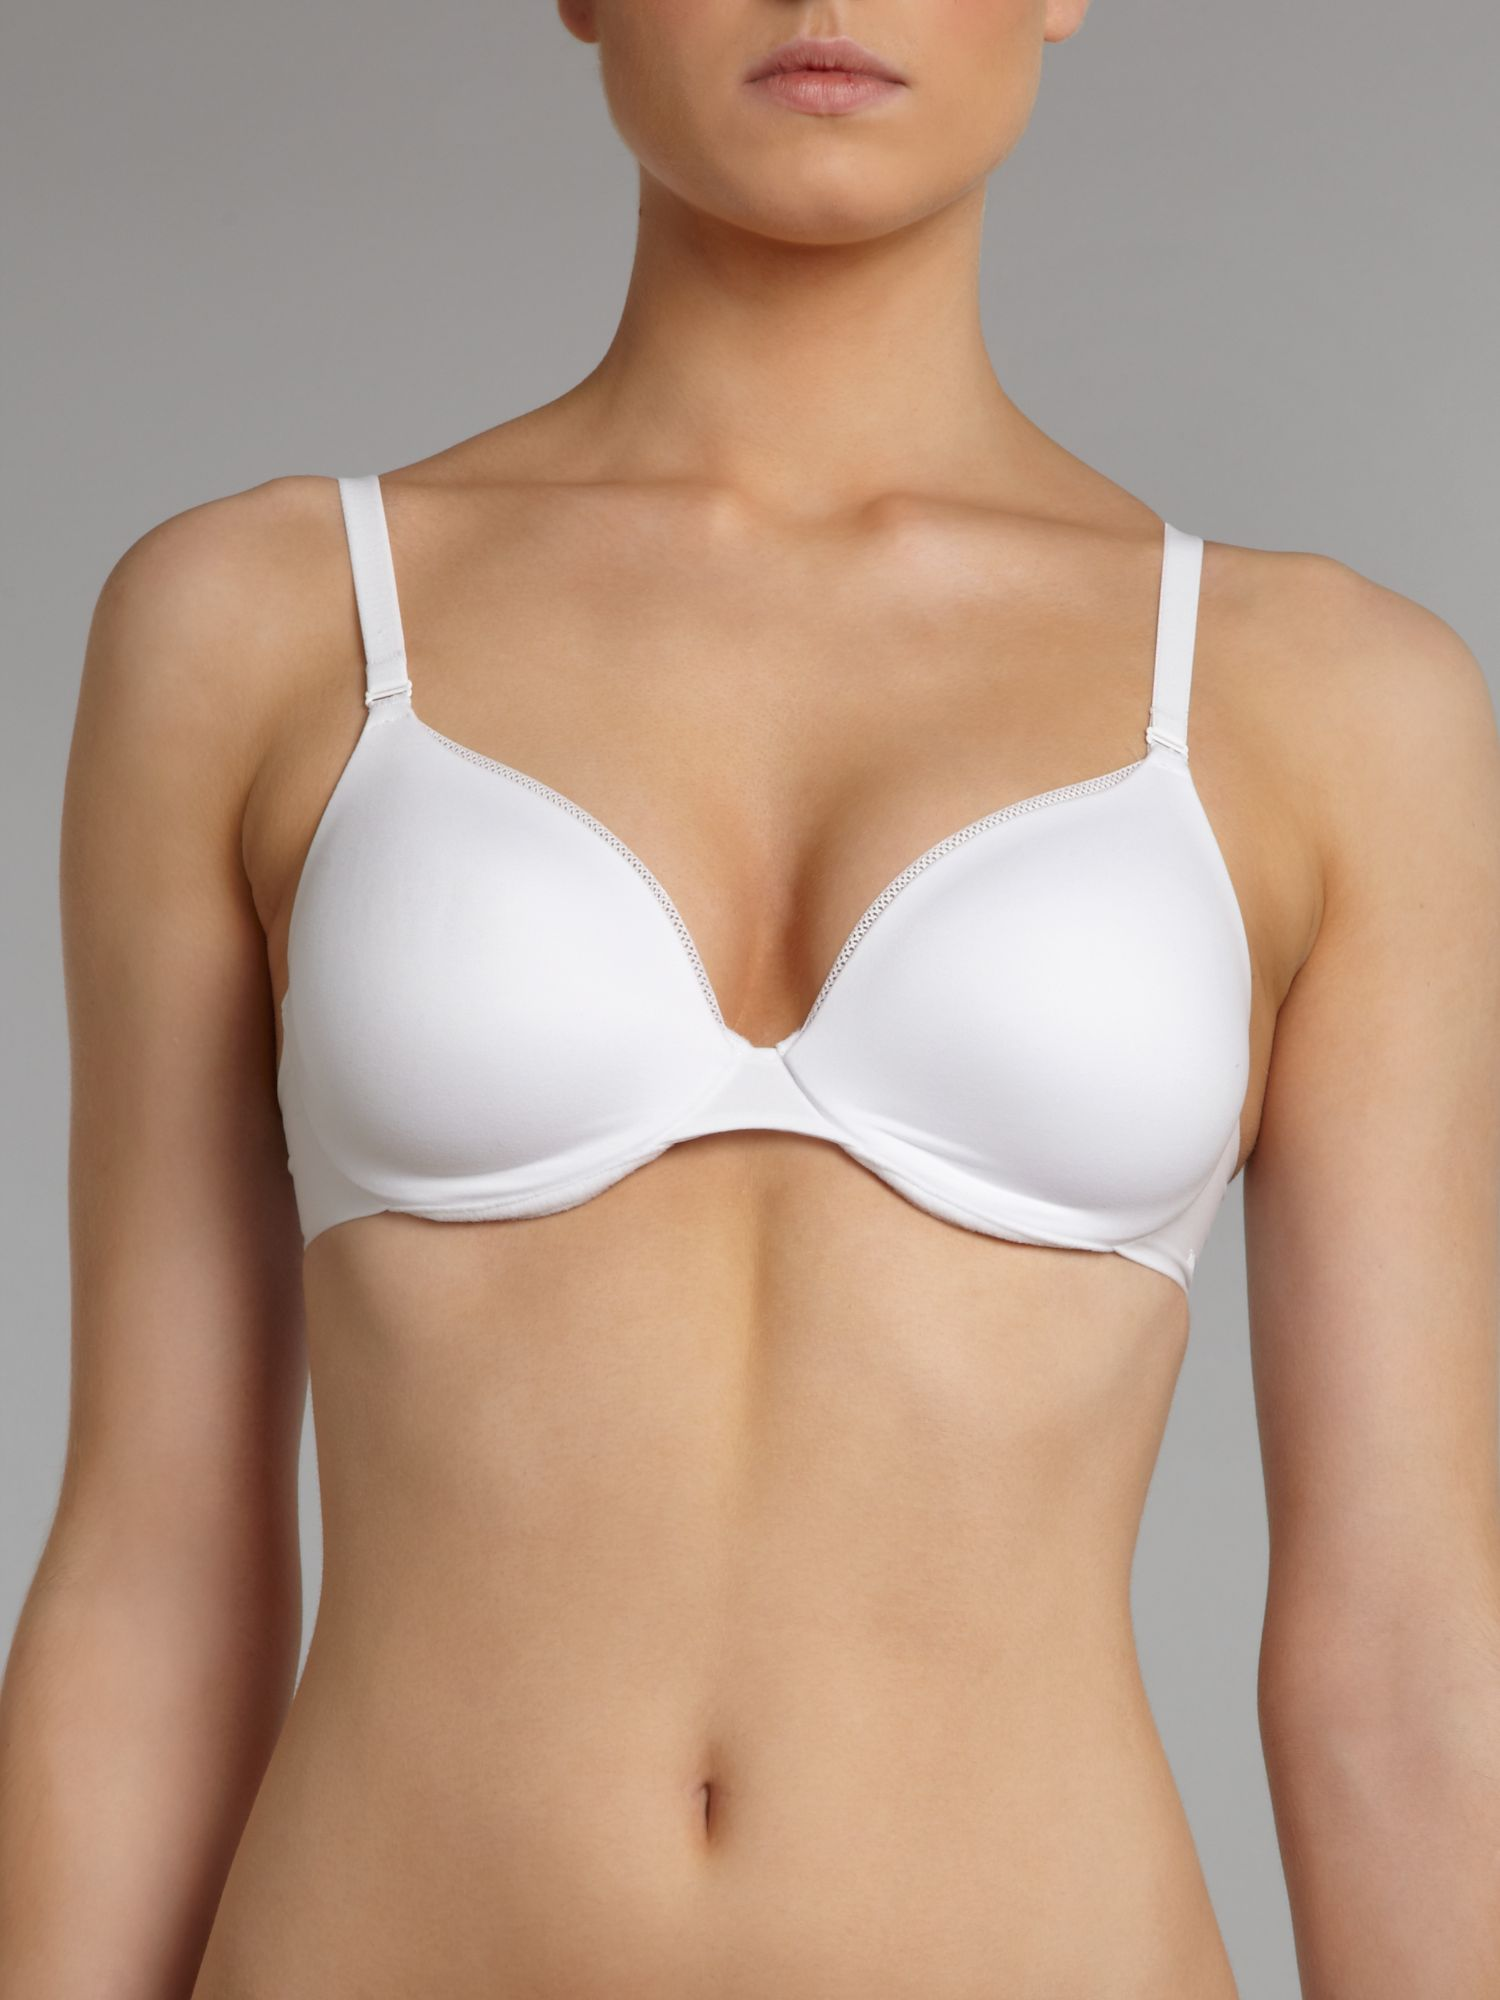 Body make up velvet wired half cup padded bra